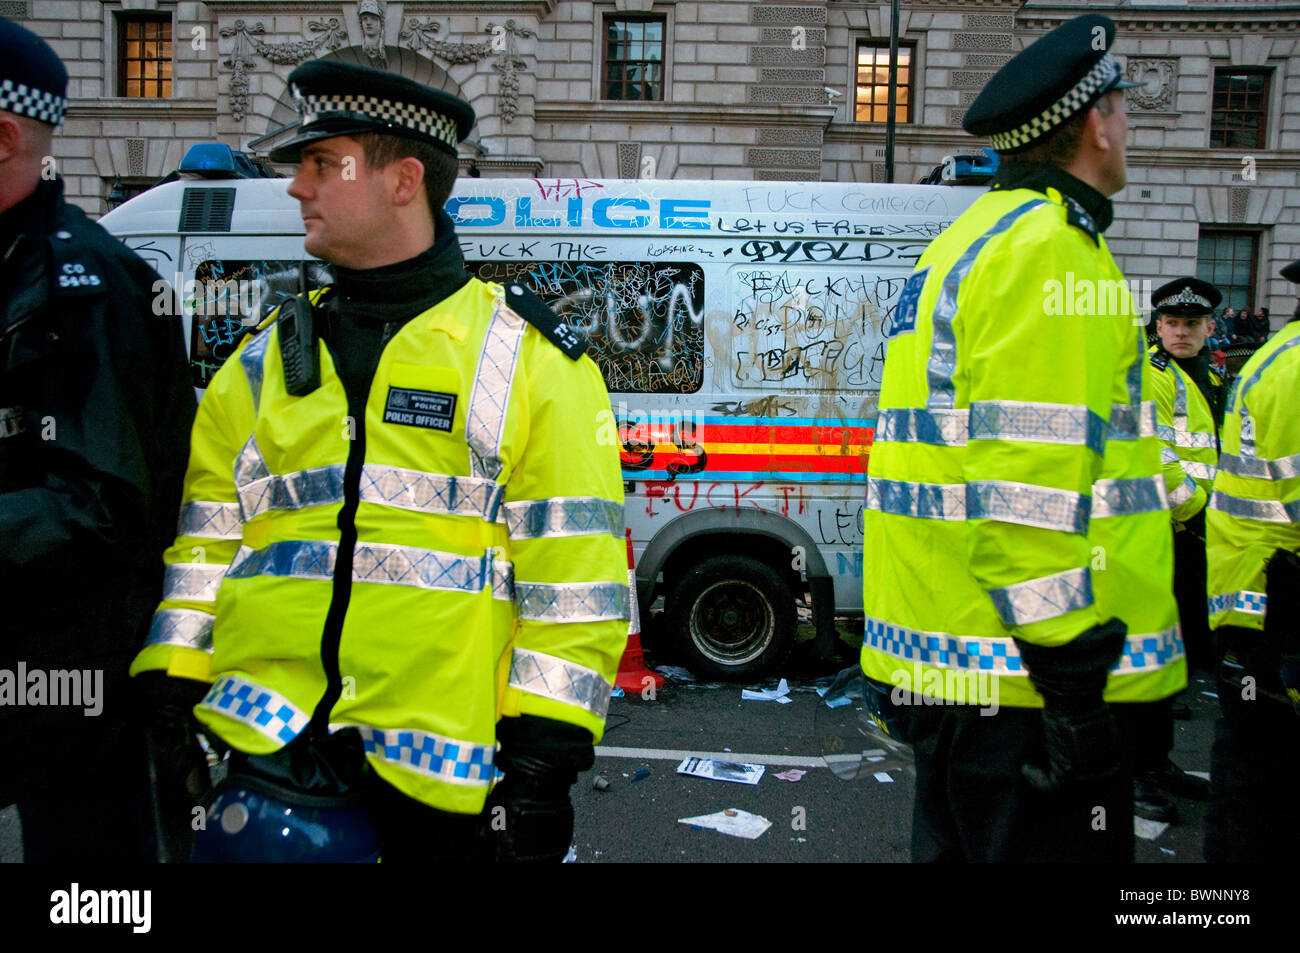 Student Protest about fees ended in violence and kettling in Whitehall  London 24.11.10 - Stock Image